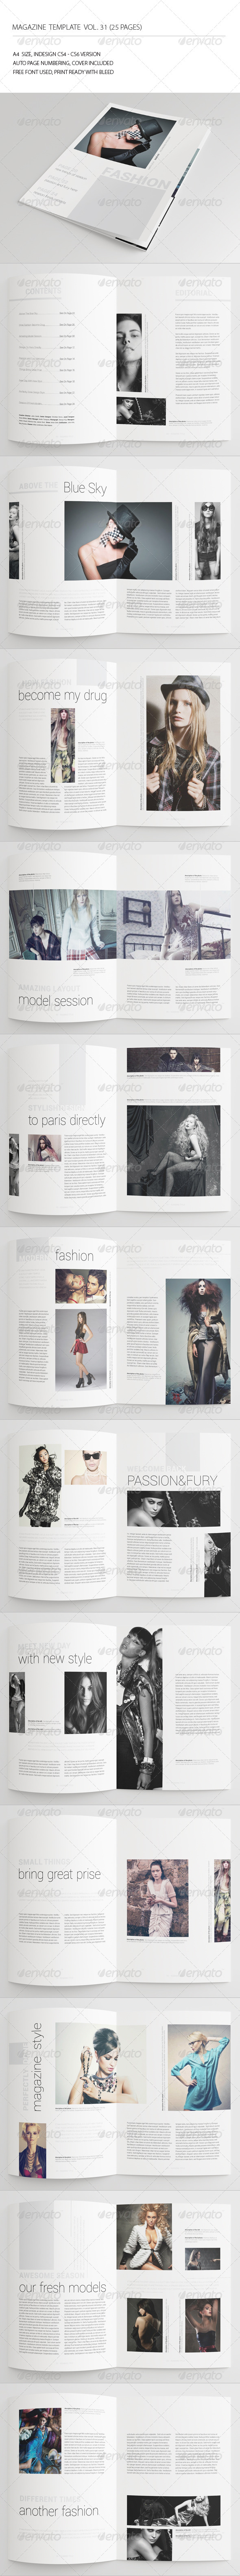 GraphicRiver 25 Pages Fashion Magazine Vol31 7226083